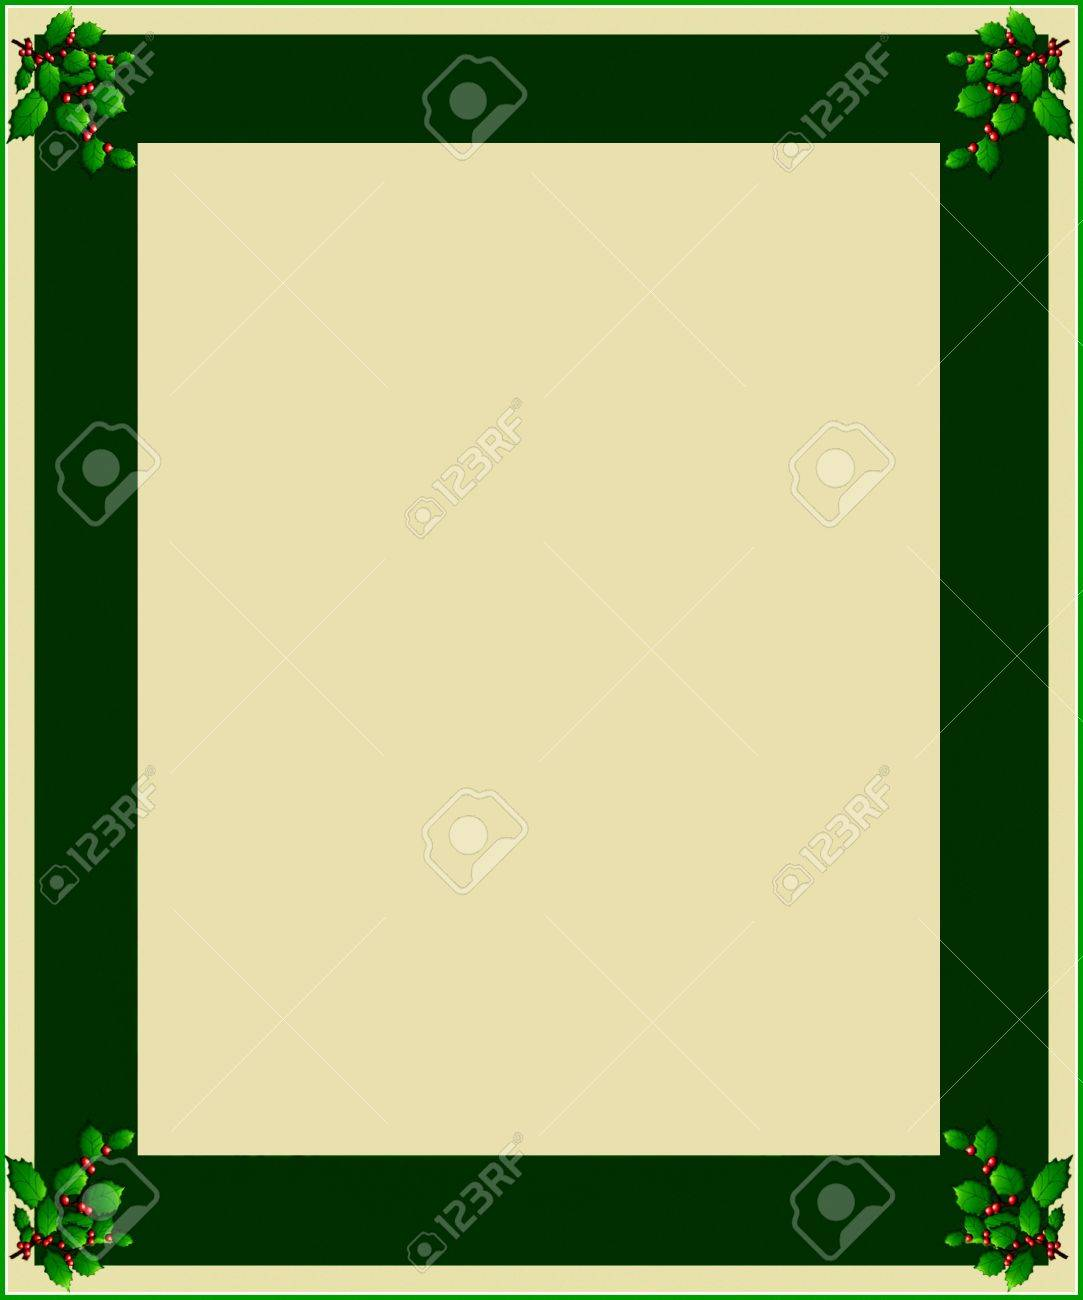 Christmas frame for greeting card with decorative ornaments. Stock Photo - 11298538